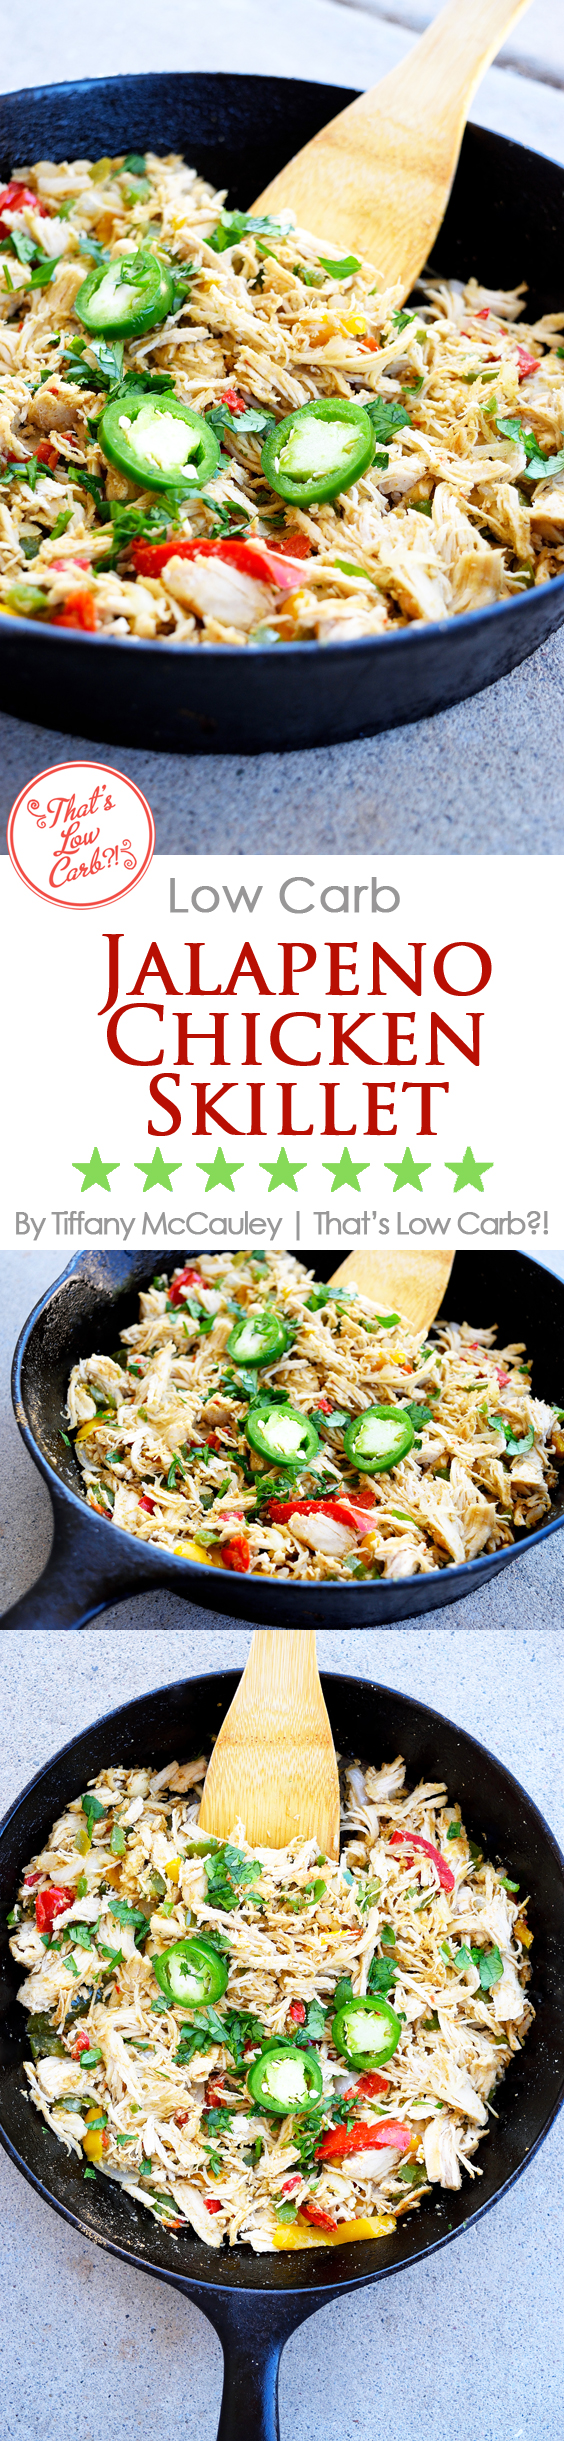 Low Carb Jalapeno Pepper Chicken Skillet Pinnable image for Pinterest.